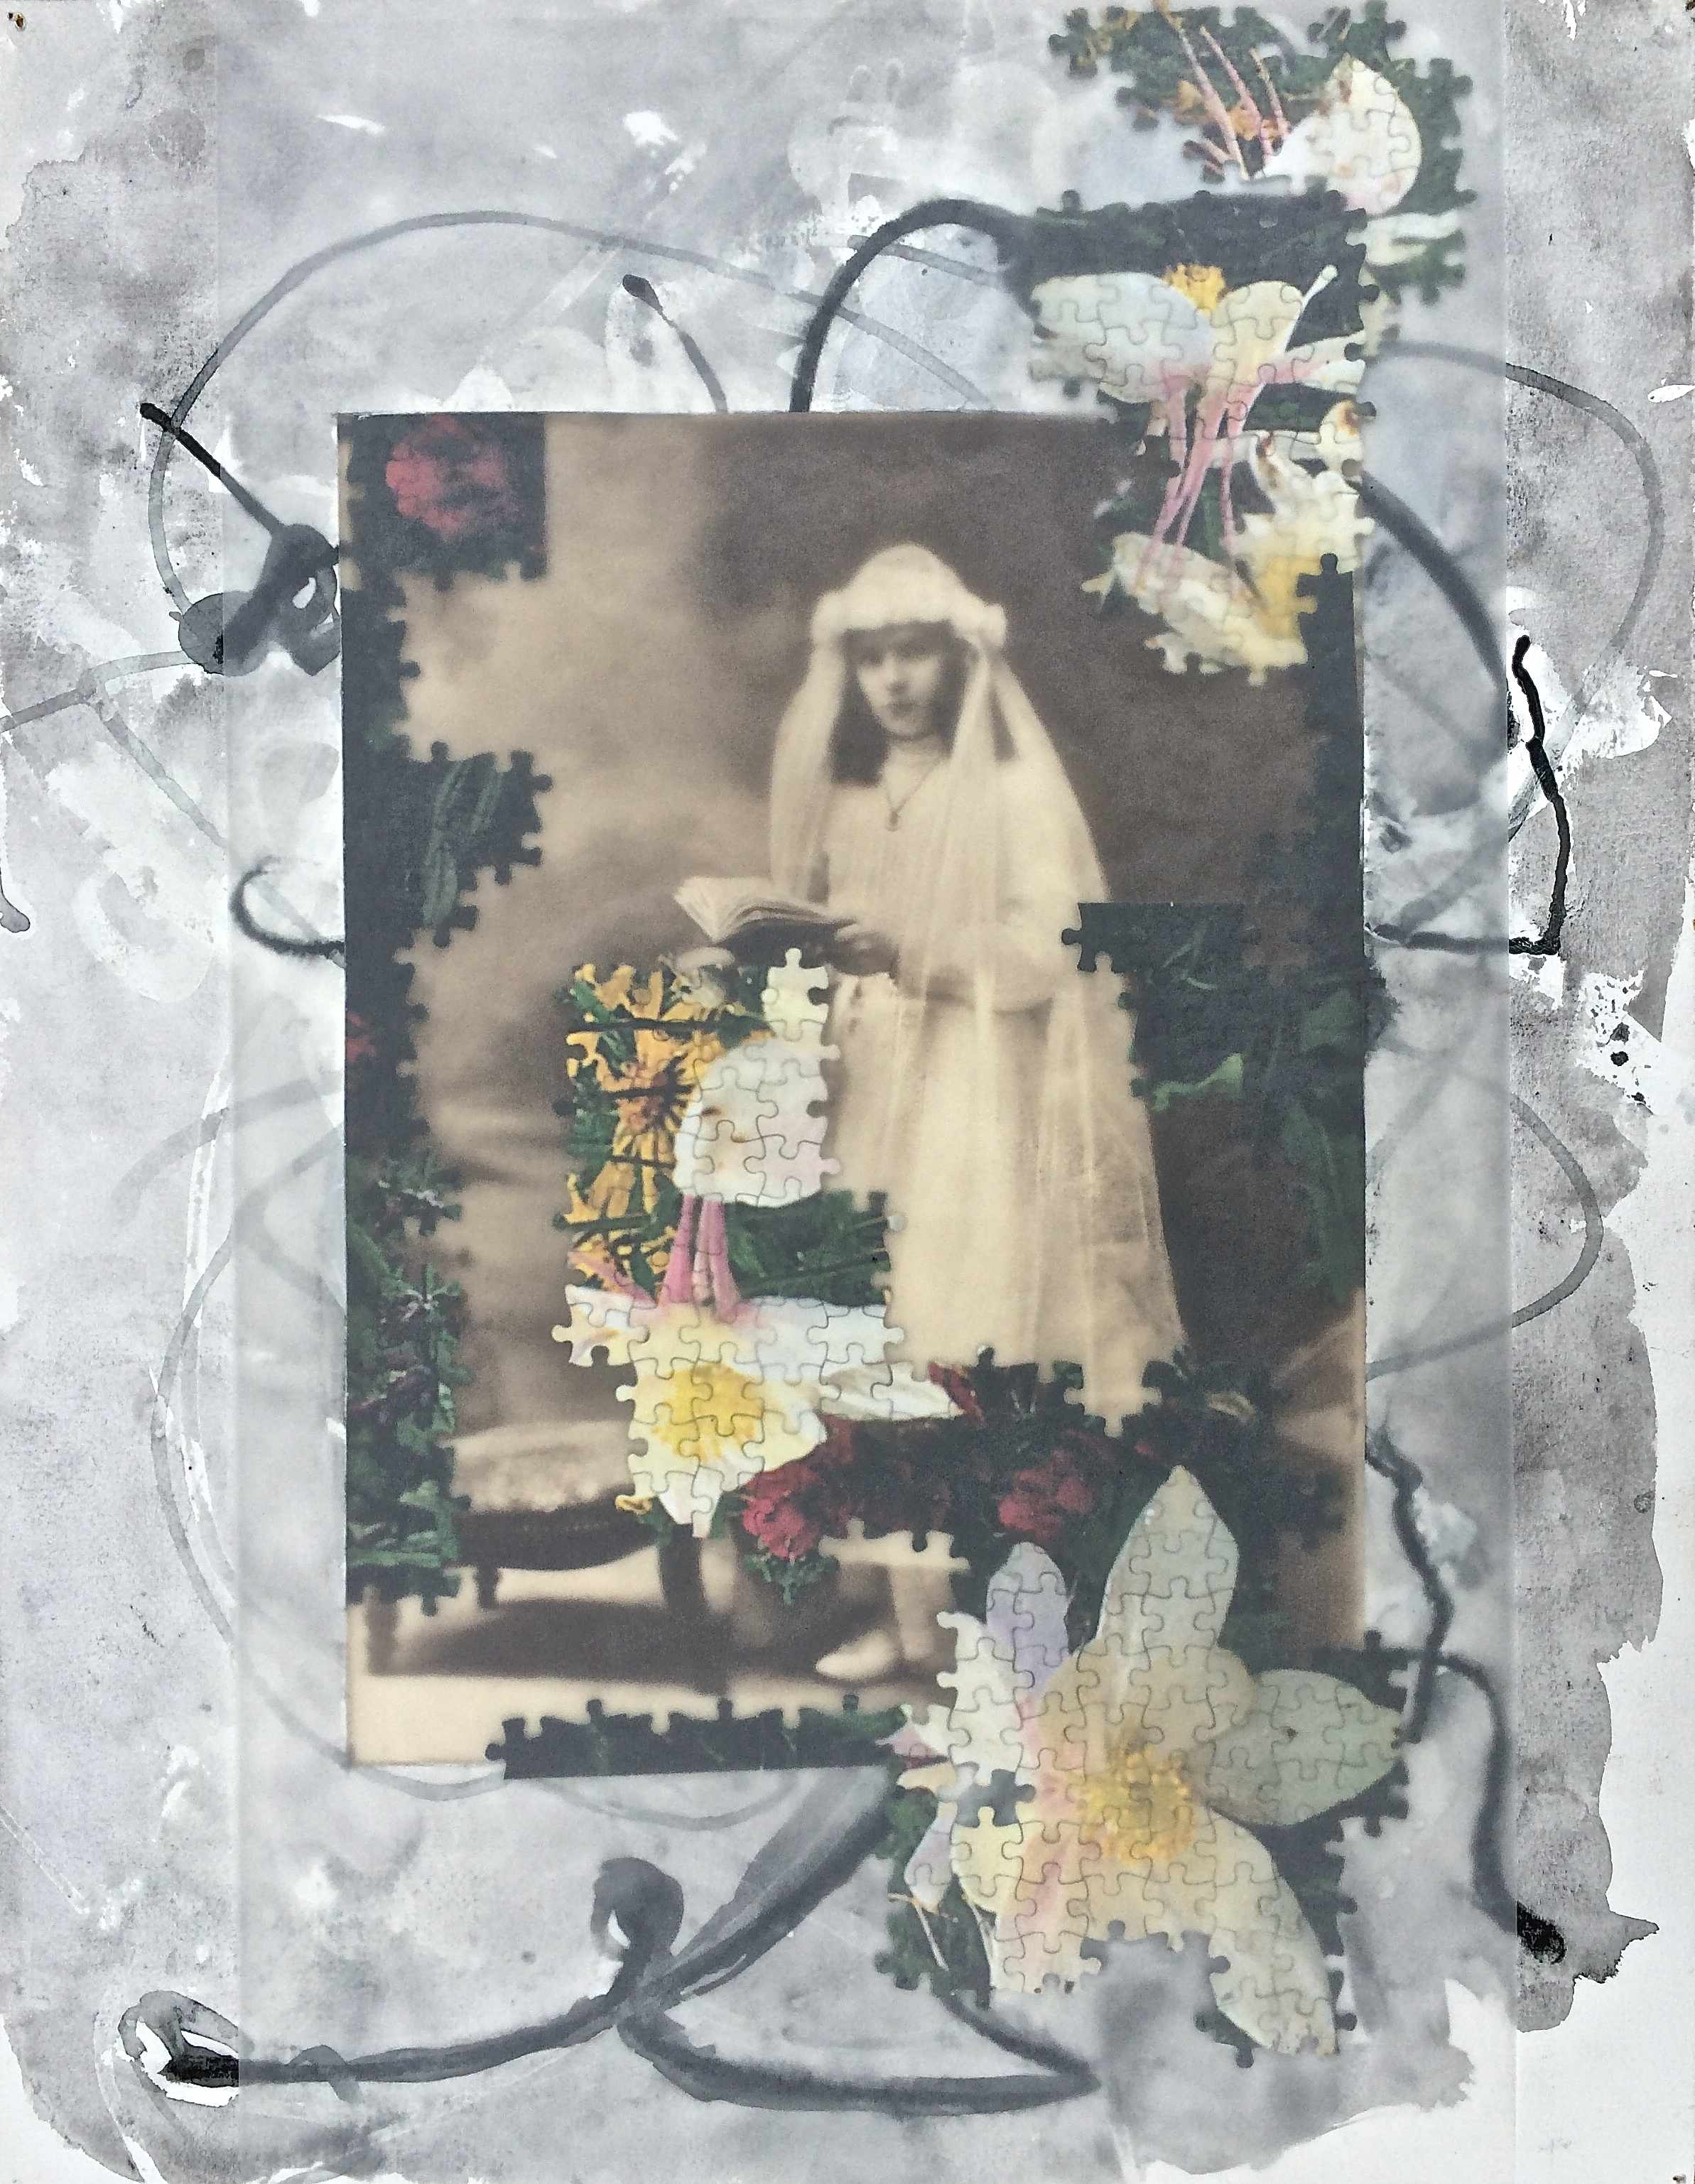 Lilly Bride 2008; charcoal, acrylic, found photo, jigsaw and vellum on paper; ~85 x 55 cm Copyright © Tennyson Woodbridge, 1963 to present. All appropriation rights reserved